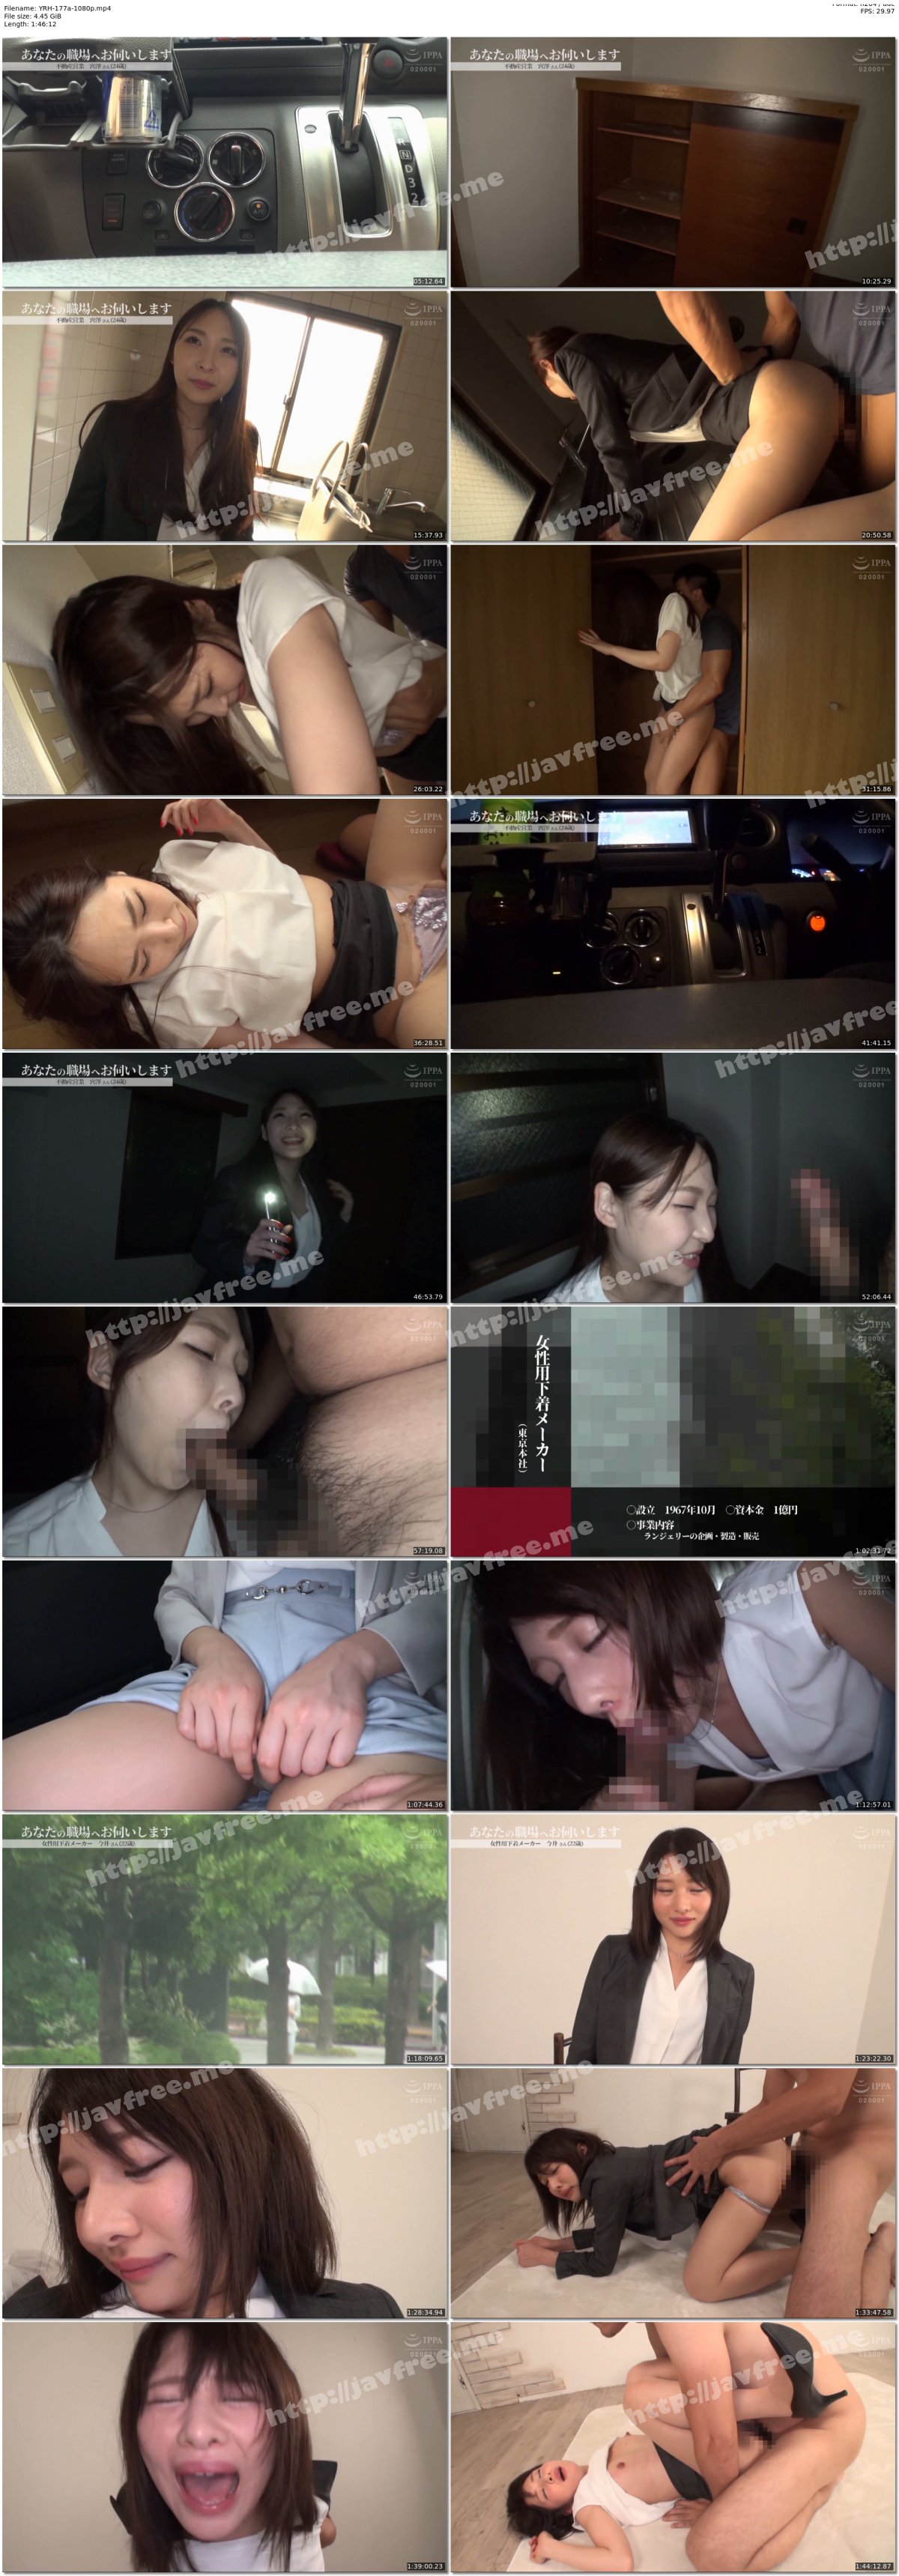 [HD][MWKD-5170] 17の御法度~独り占め(2)~/ちひろ - image YRH-177a-1080p on https://javfree.me